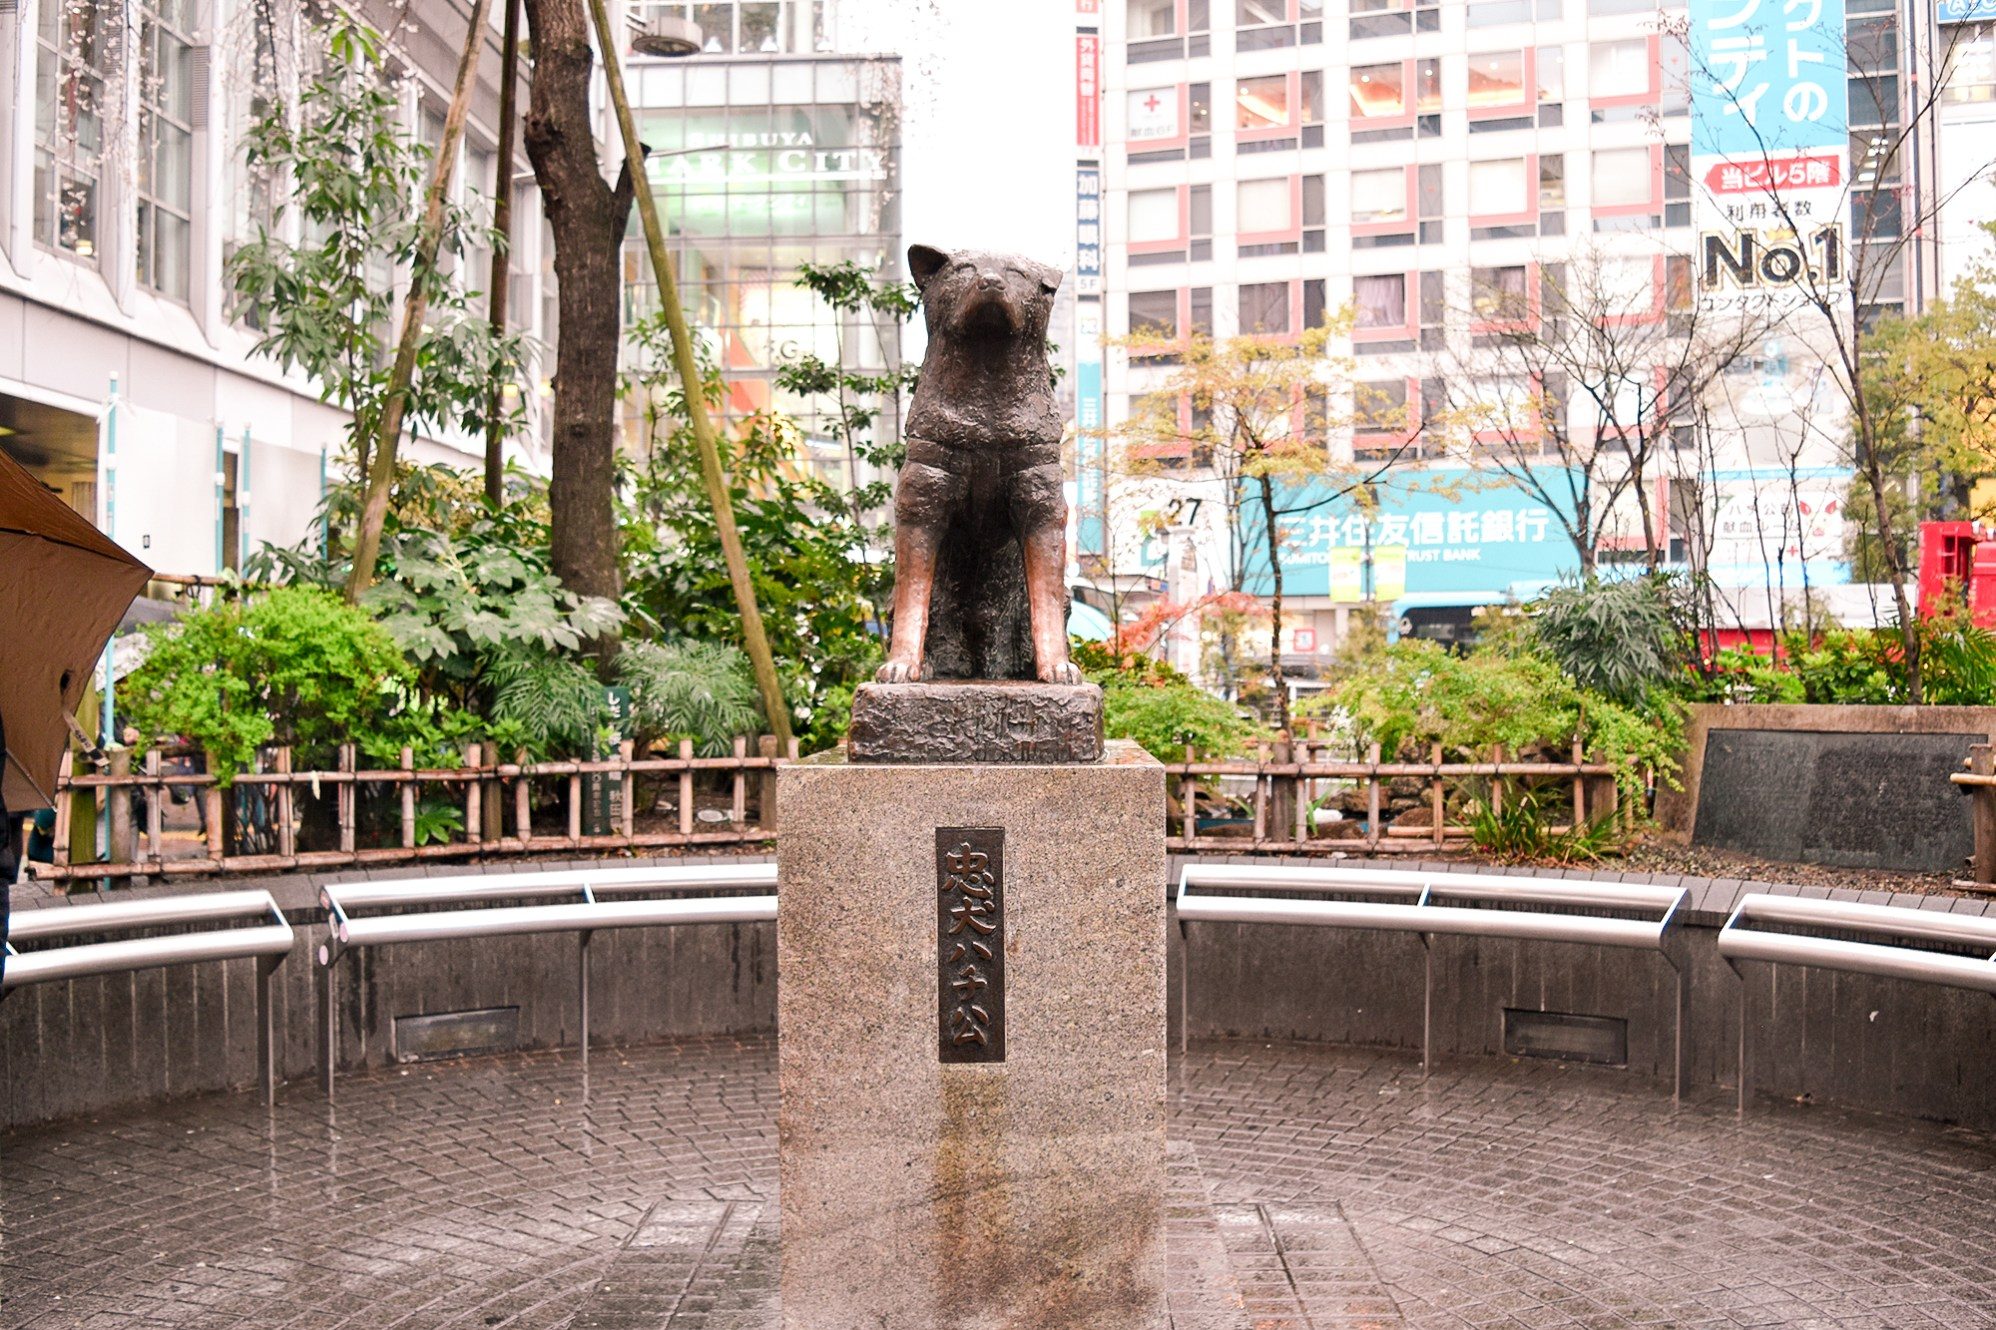 The infamous Hachiko statue. It's the first time I've seen this spot empty.